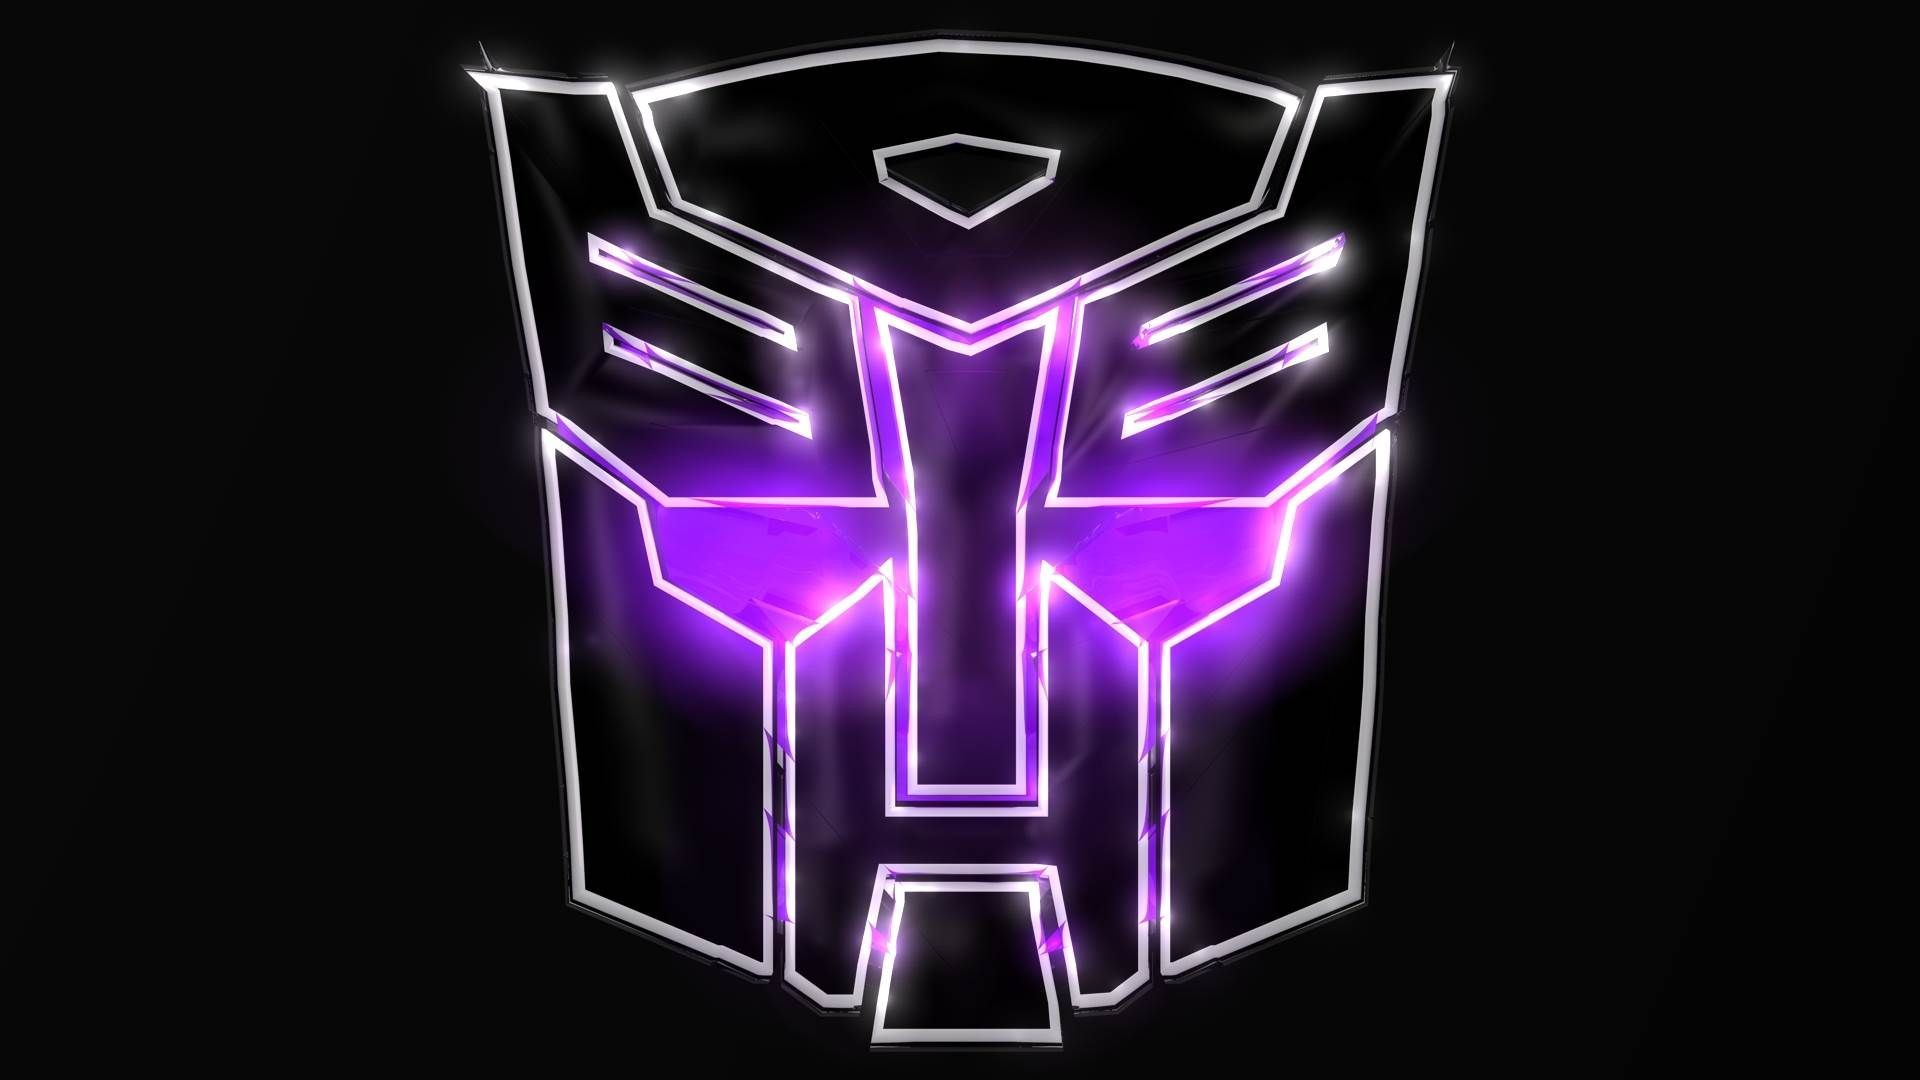 Res: 1920x1080, Collection of Autobot Symbol Wallpaper on HDWallpapers 1920×1200 Autobots  Wallpapers | Adorable Wallpapers